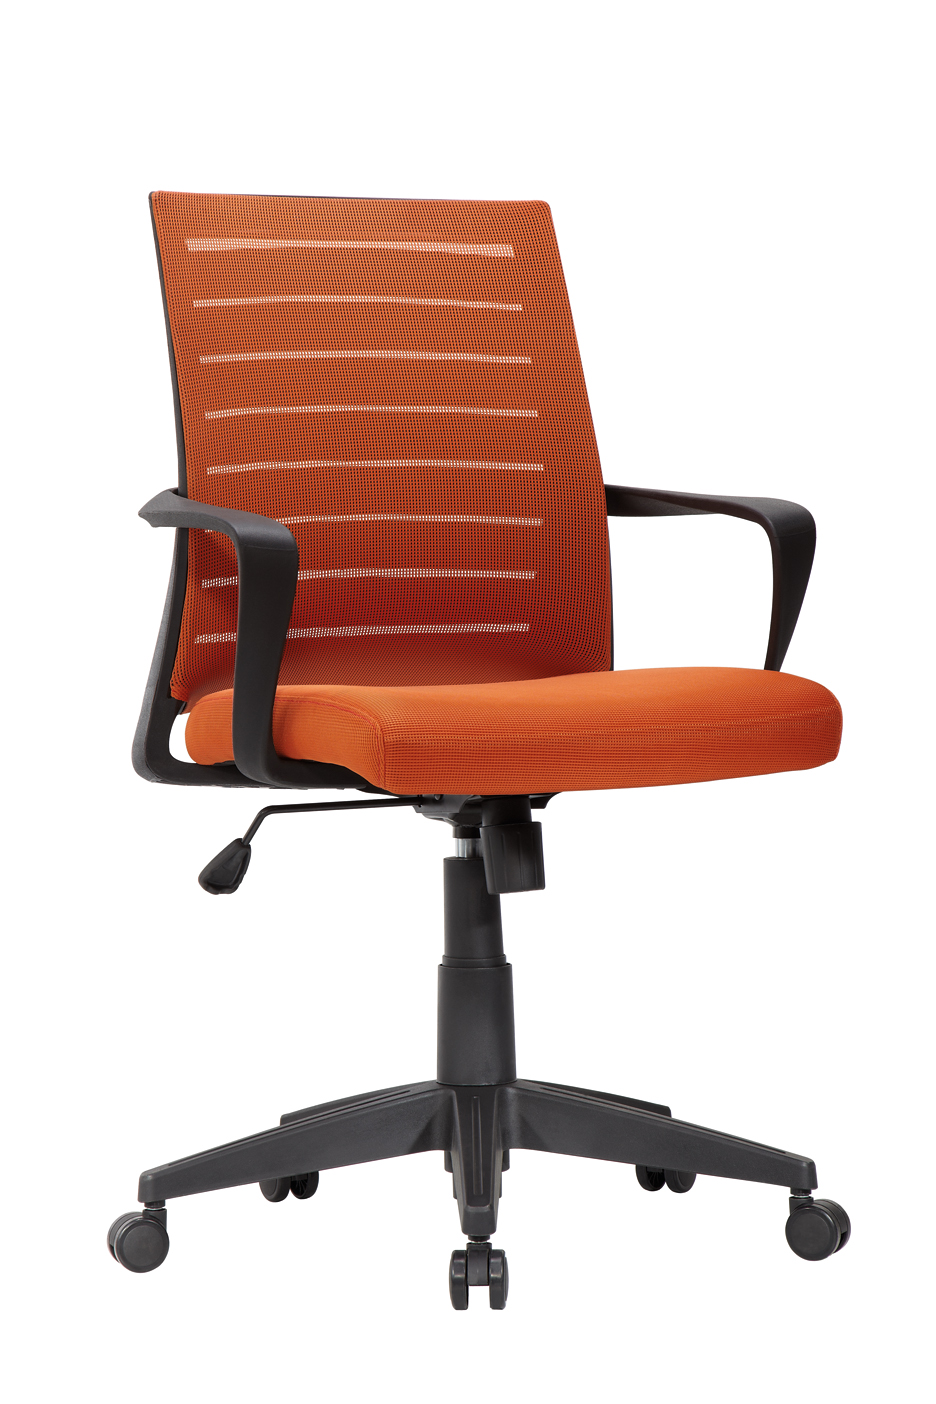 revolving chair manufacturer in lahore blue velvet slipper office furniture workspace pakistan staff chairs